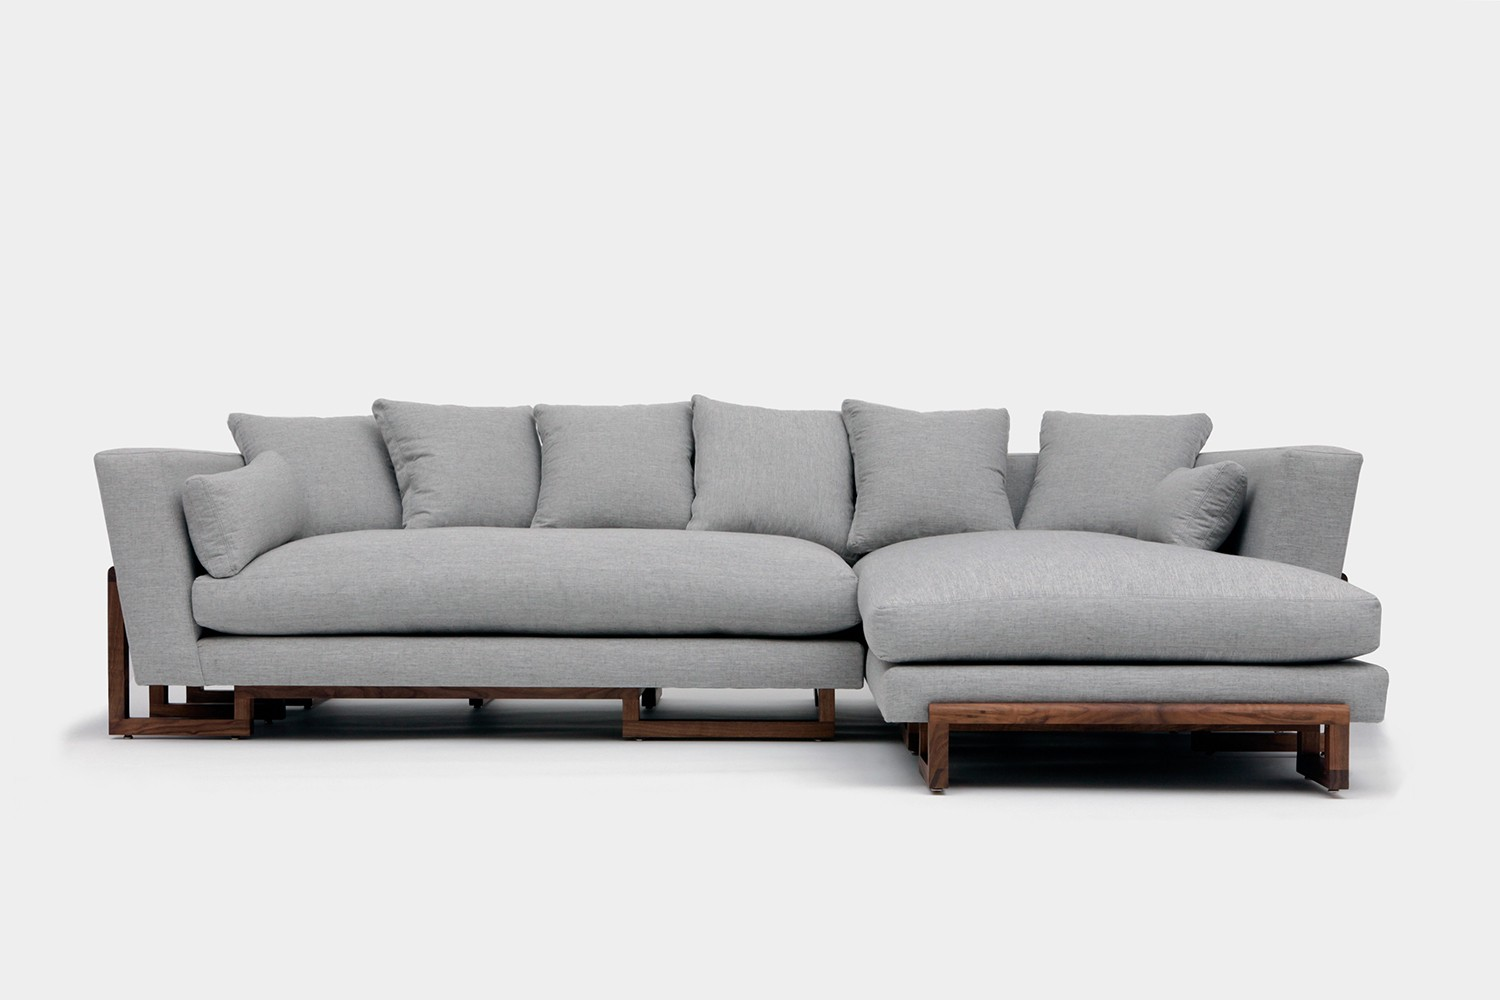 Sofas + Lounge Chairs. LRG Sectional